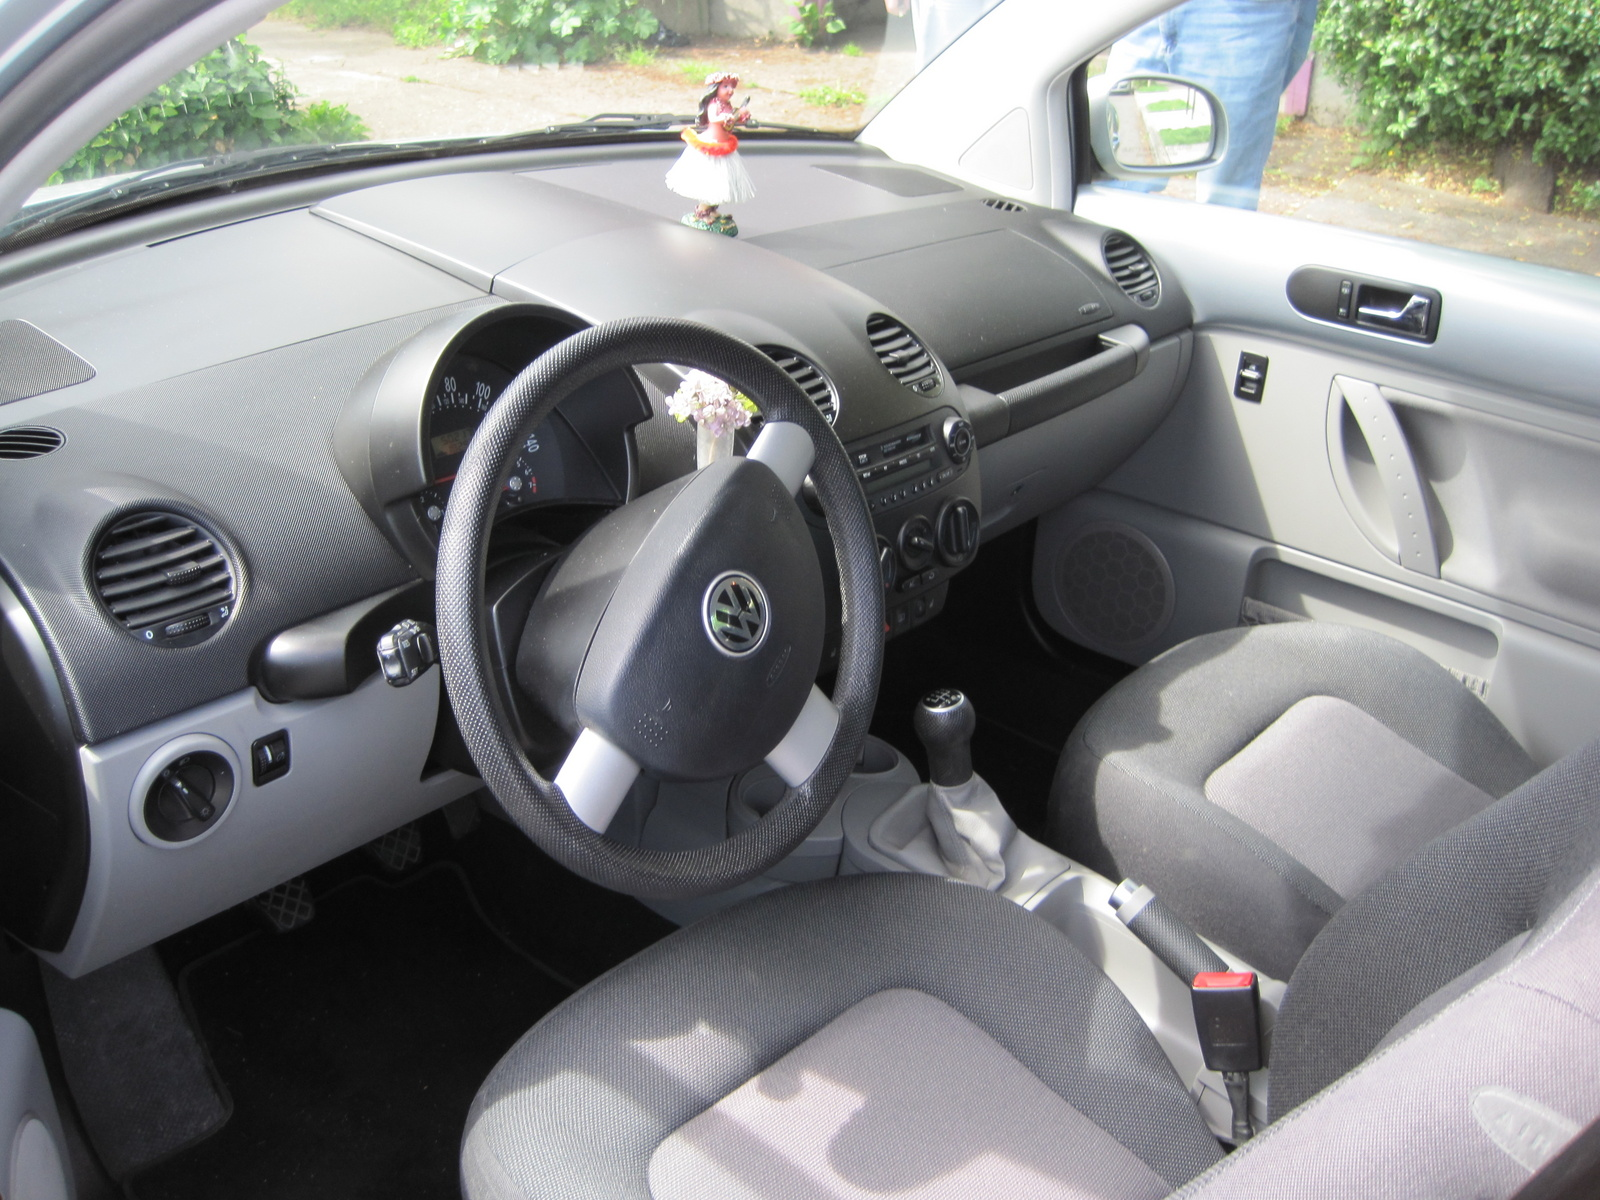 2004 volkswagen beetle interior pictures cargurus. Black Bedroom Furniture Sets. Home Design Ideas